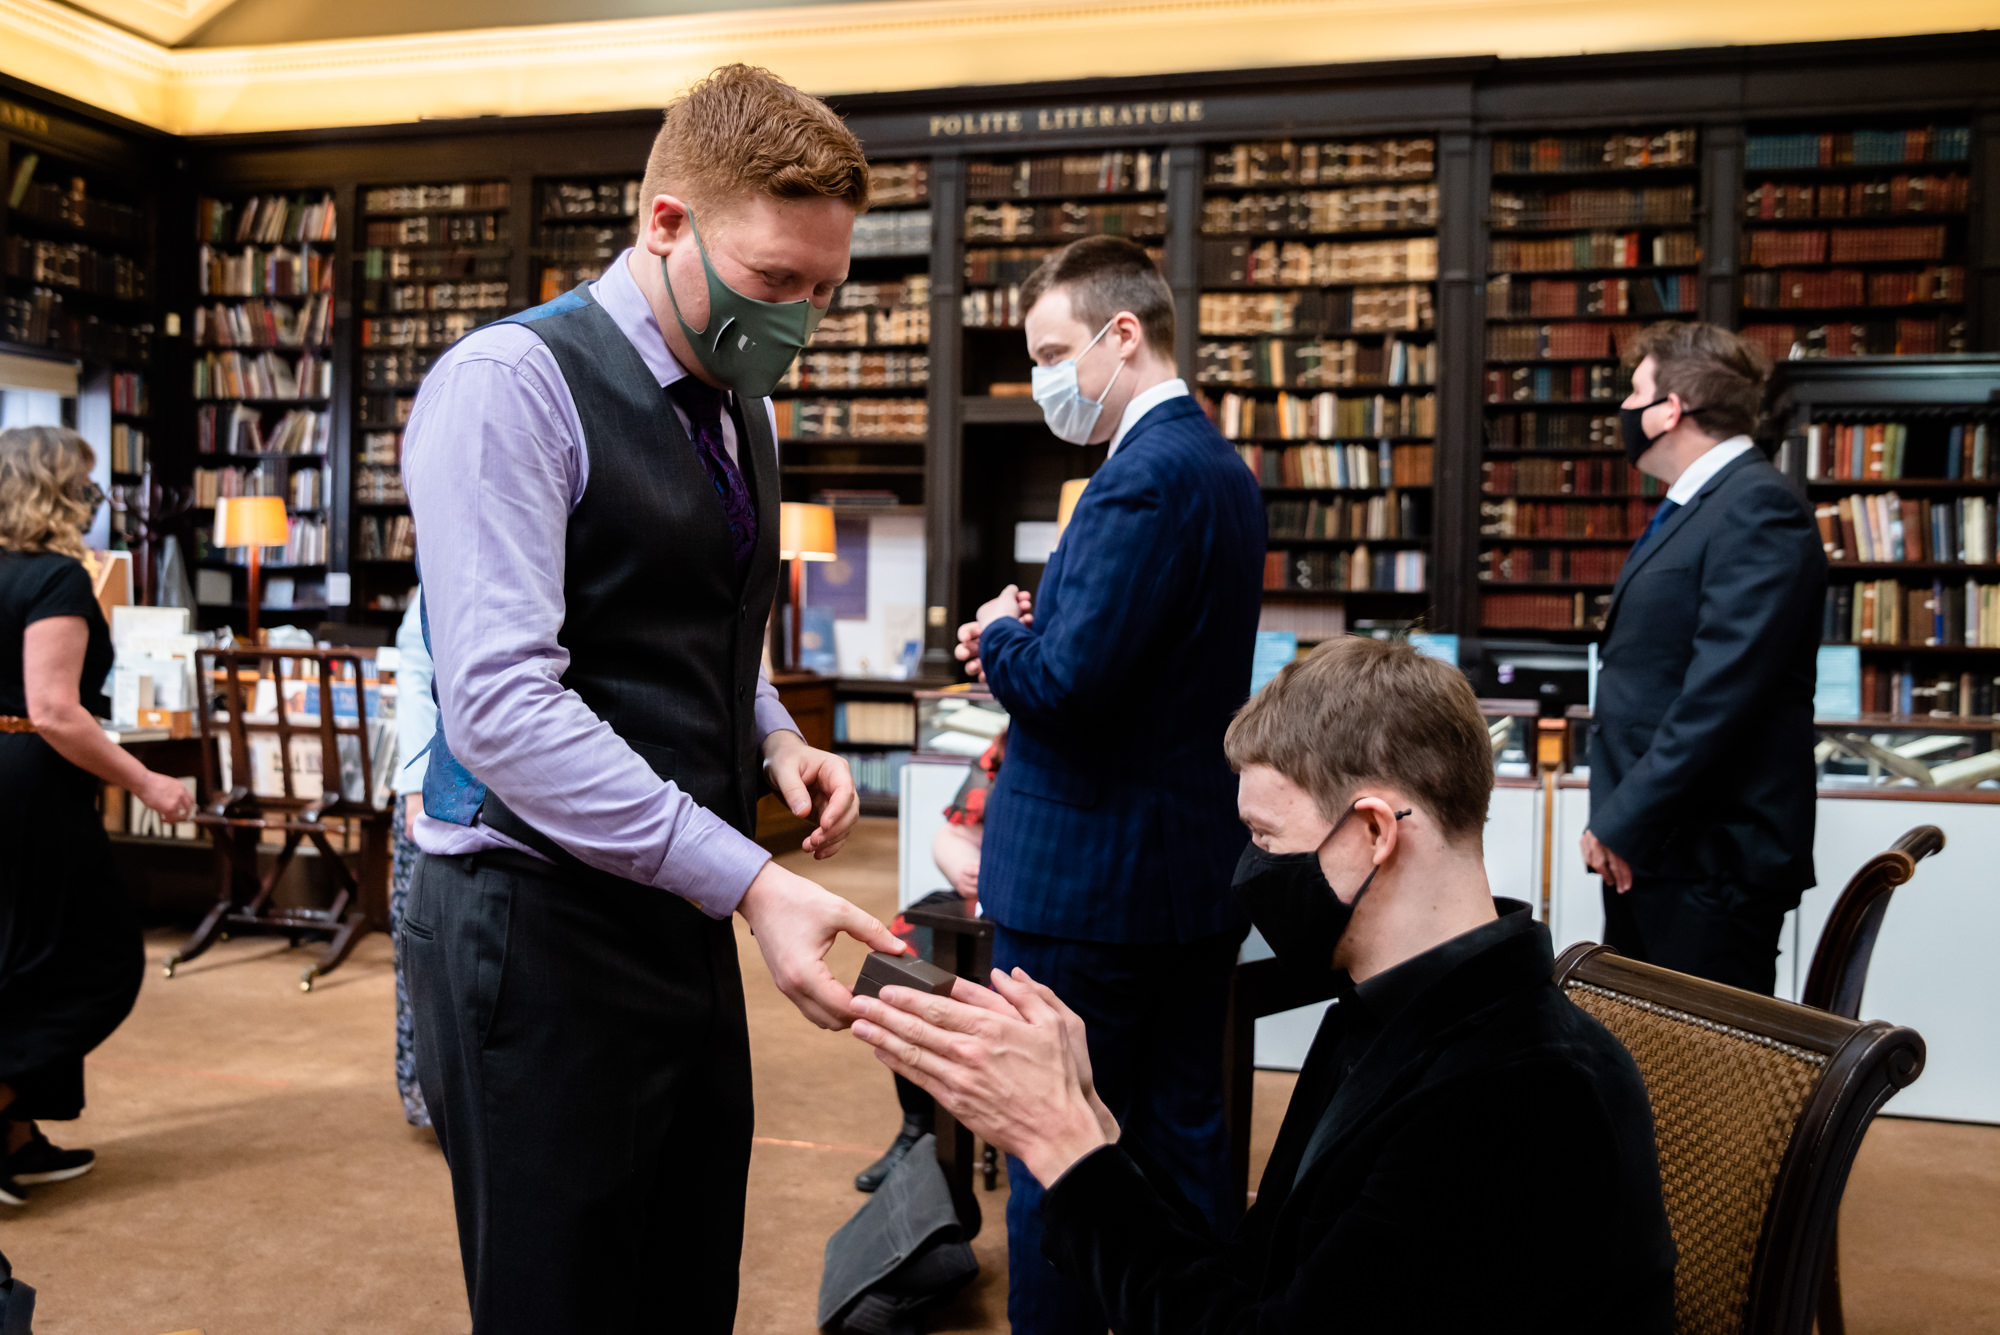 Groom giving the rings to his bestman at The Portico Library